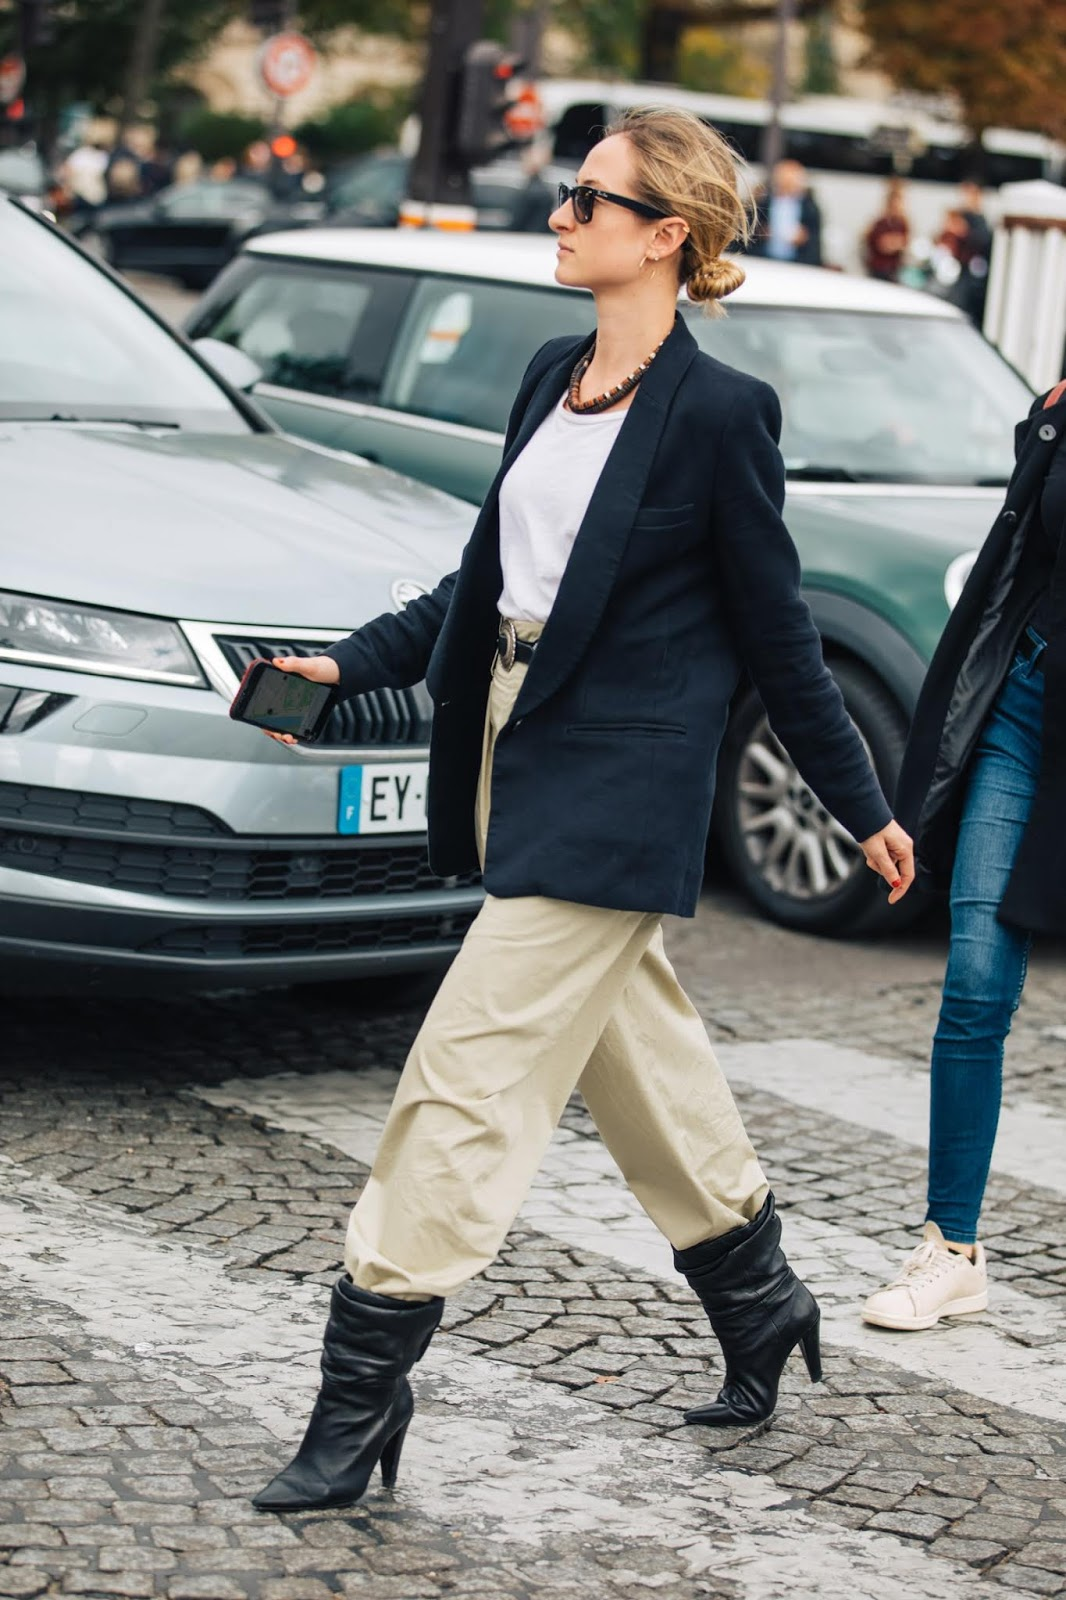 Slouchy Boots Are Undeniably Cool for Fall